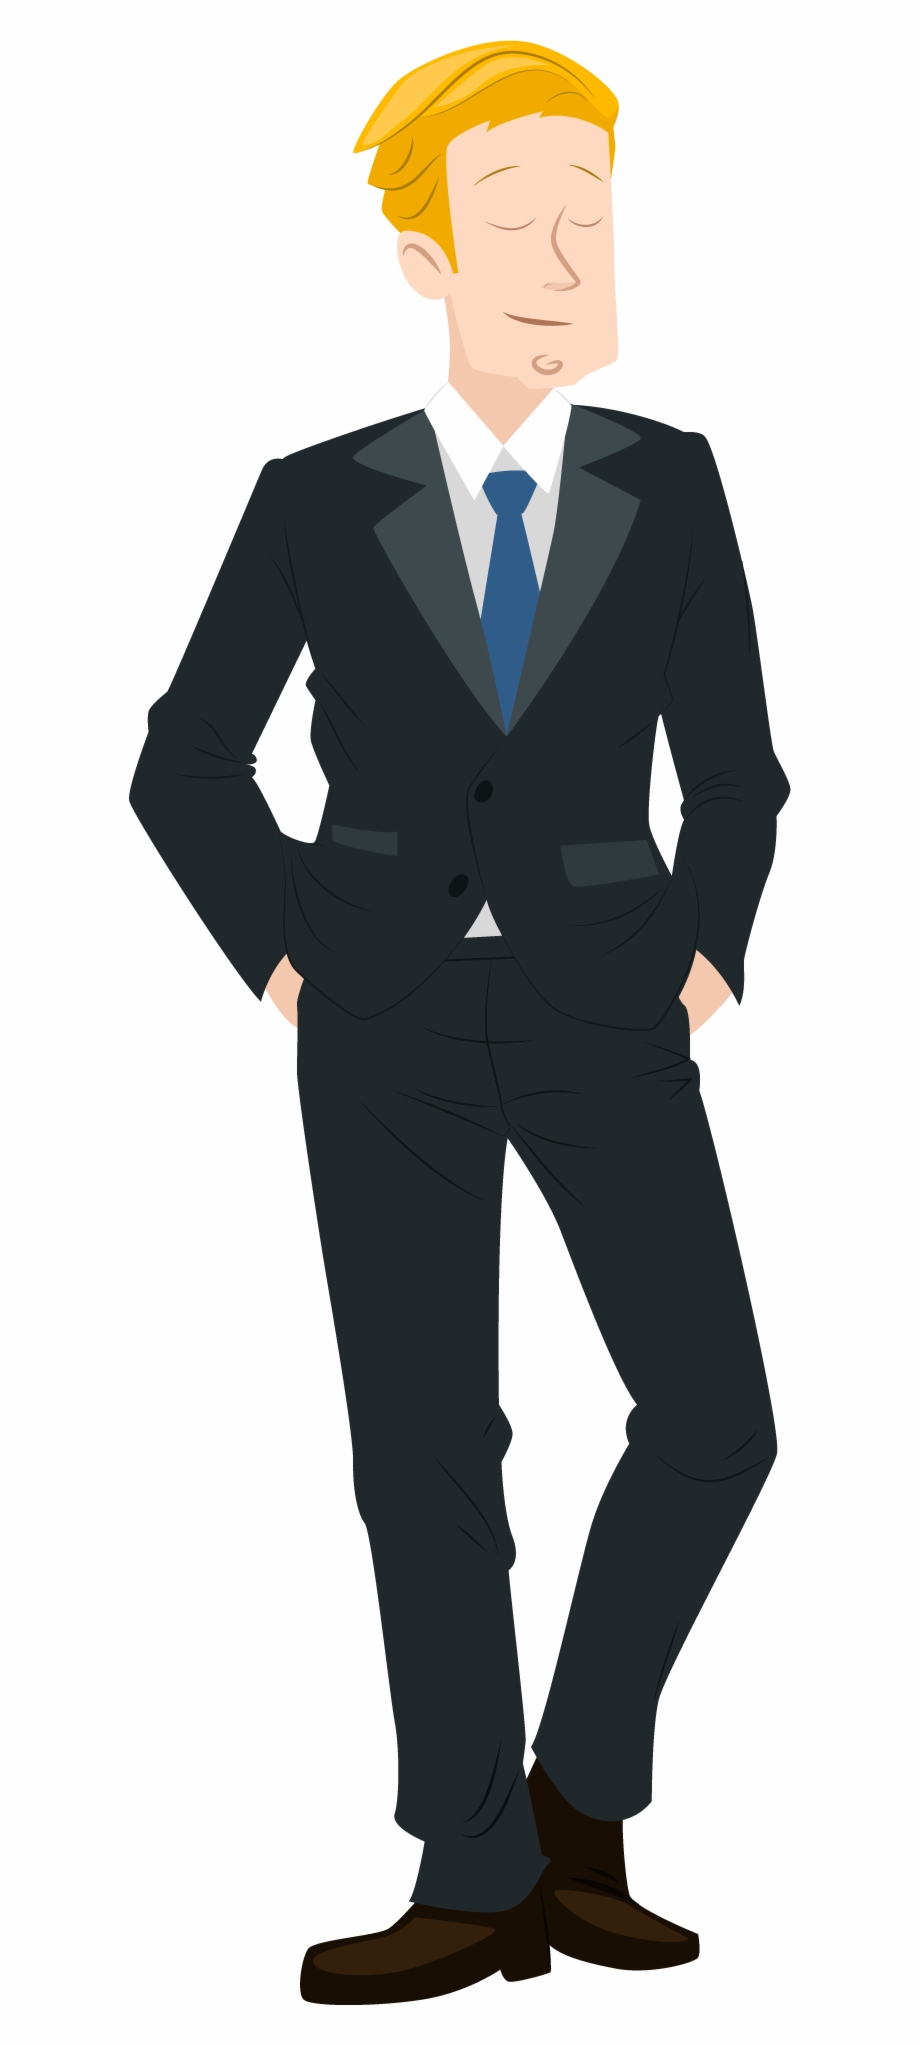 Clipart of man in suit graphic royalty free Man Png Transparent Free Images - Man Suit Png Clipart, Transparent ... graphic royalty free